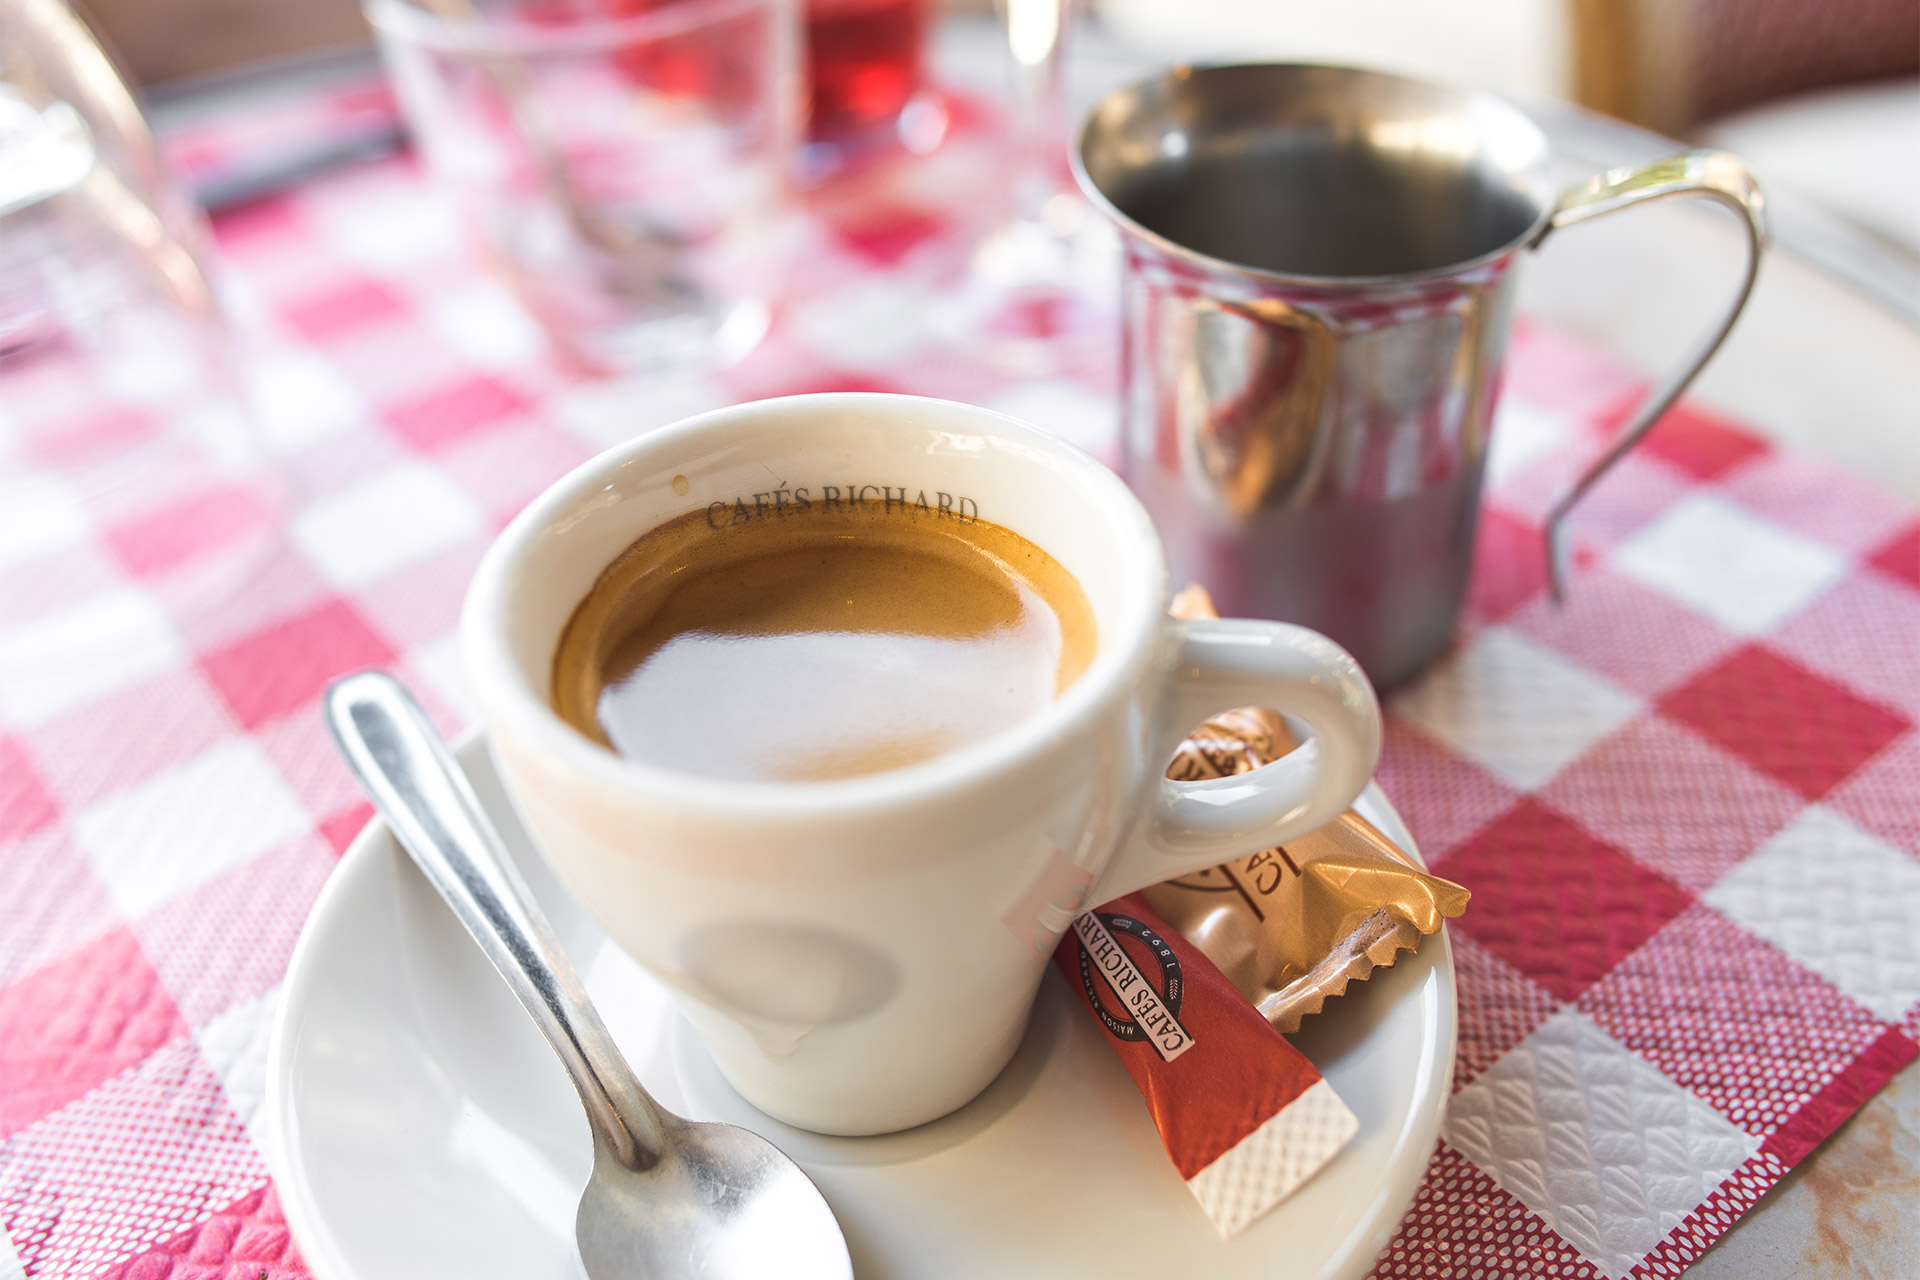 Enjoy an espresso in Paris